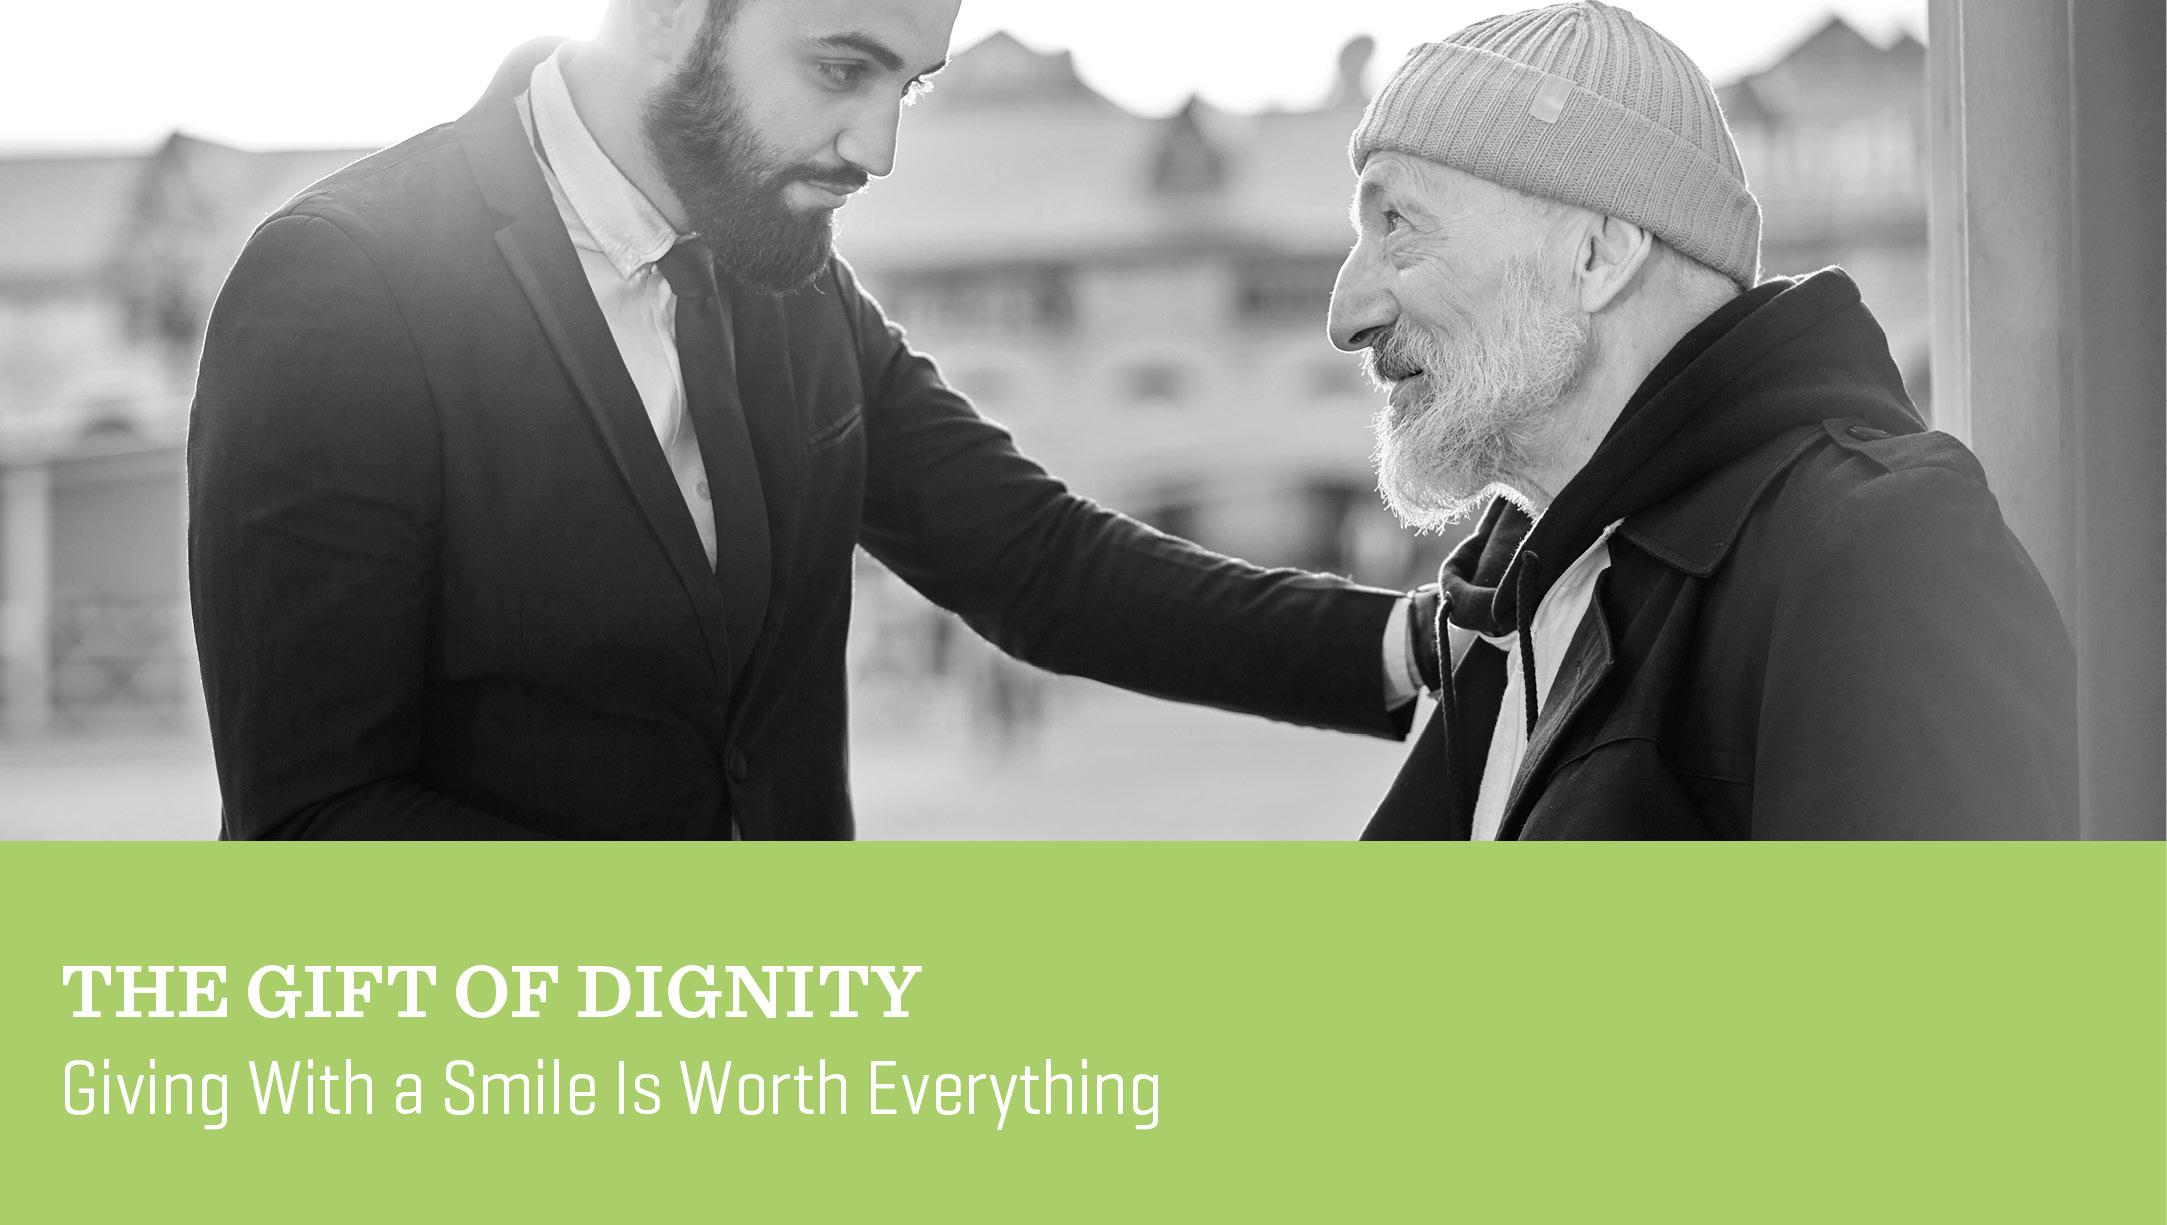 The Gift of Dignity